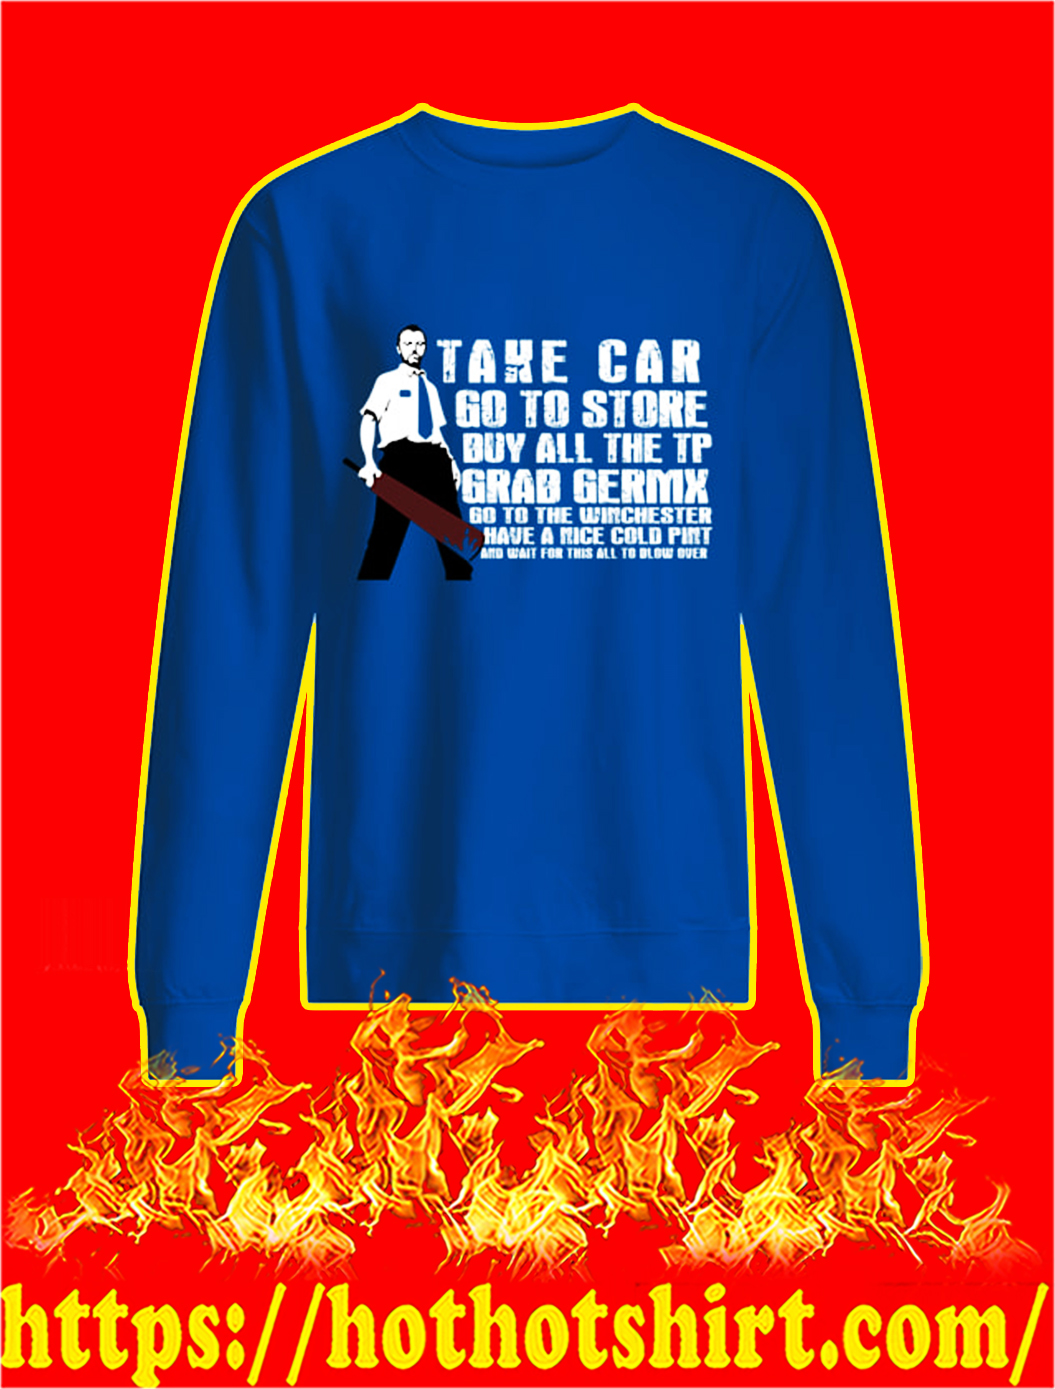 Take Car Go To Store Buy All The TP Grad Germx sweatshirt